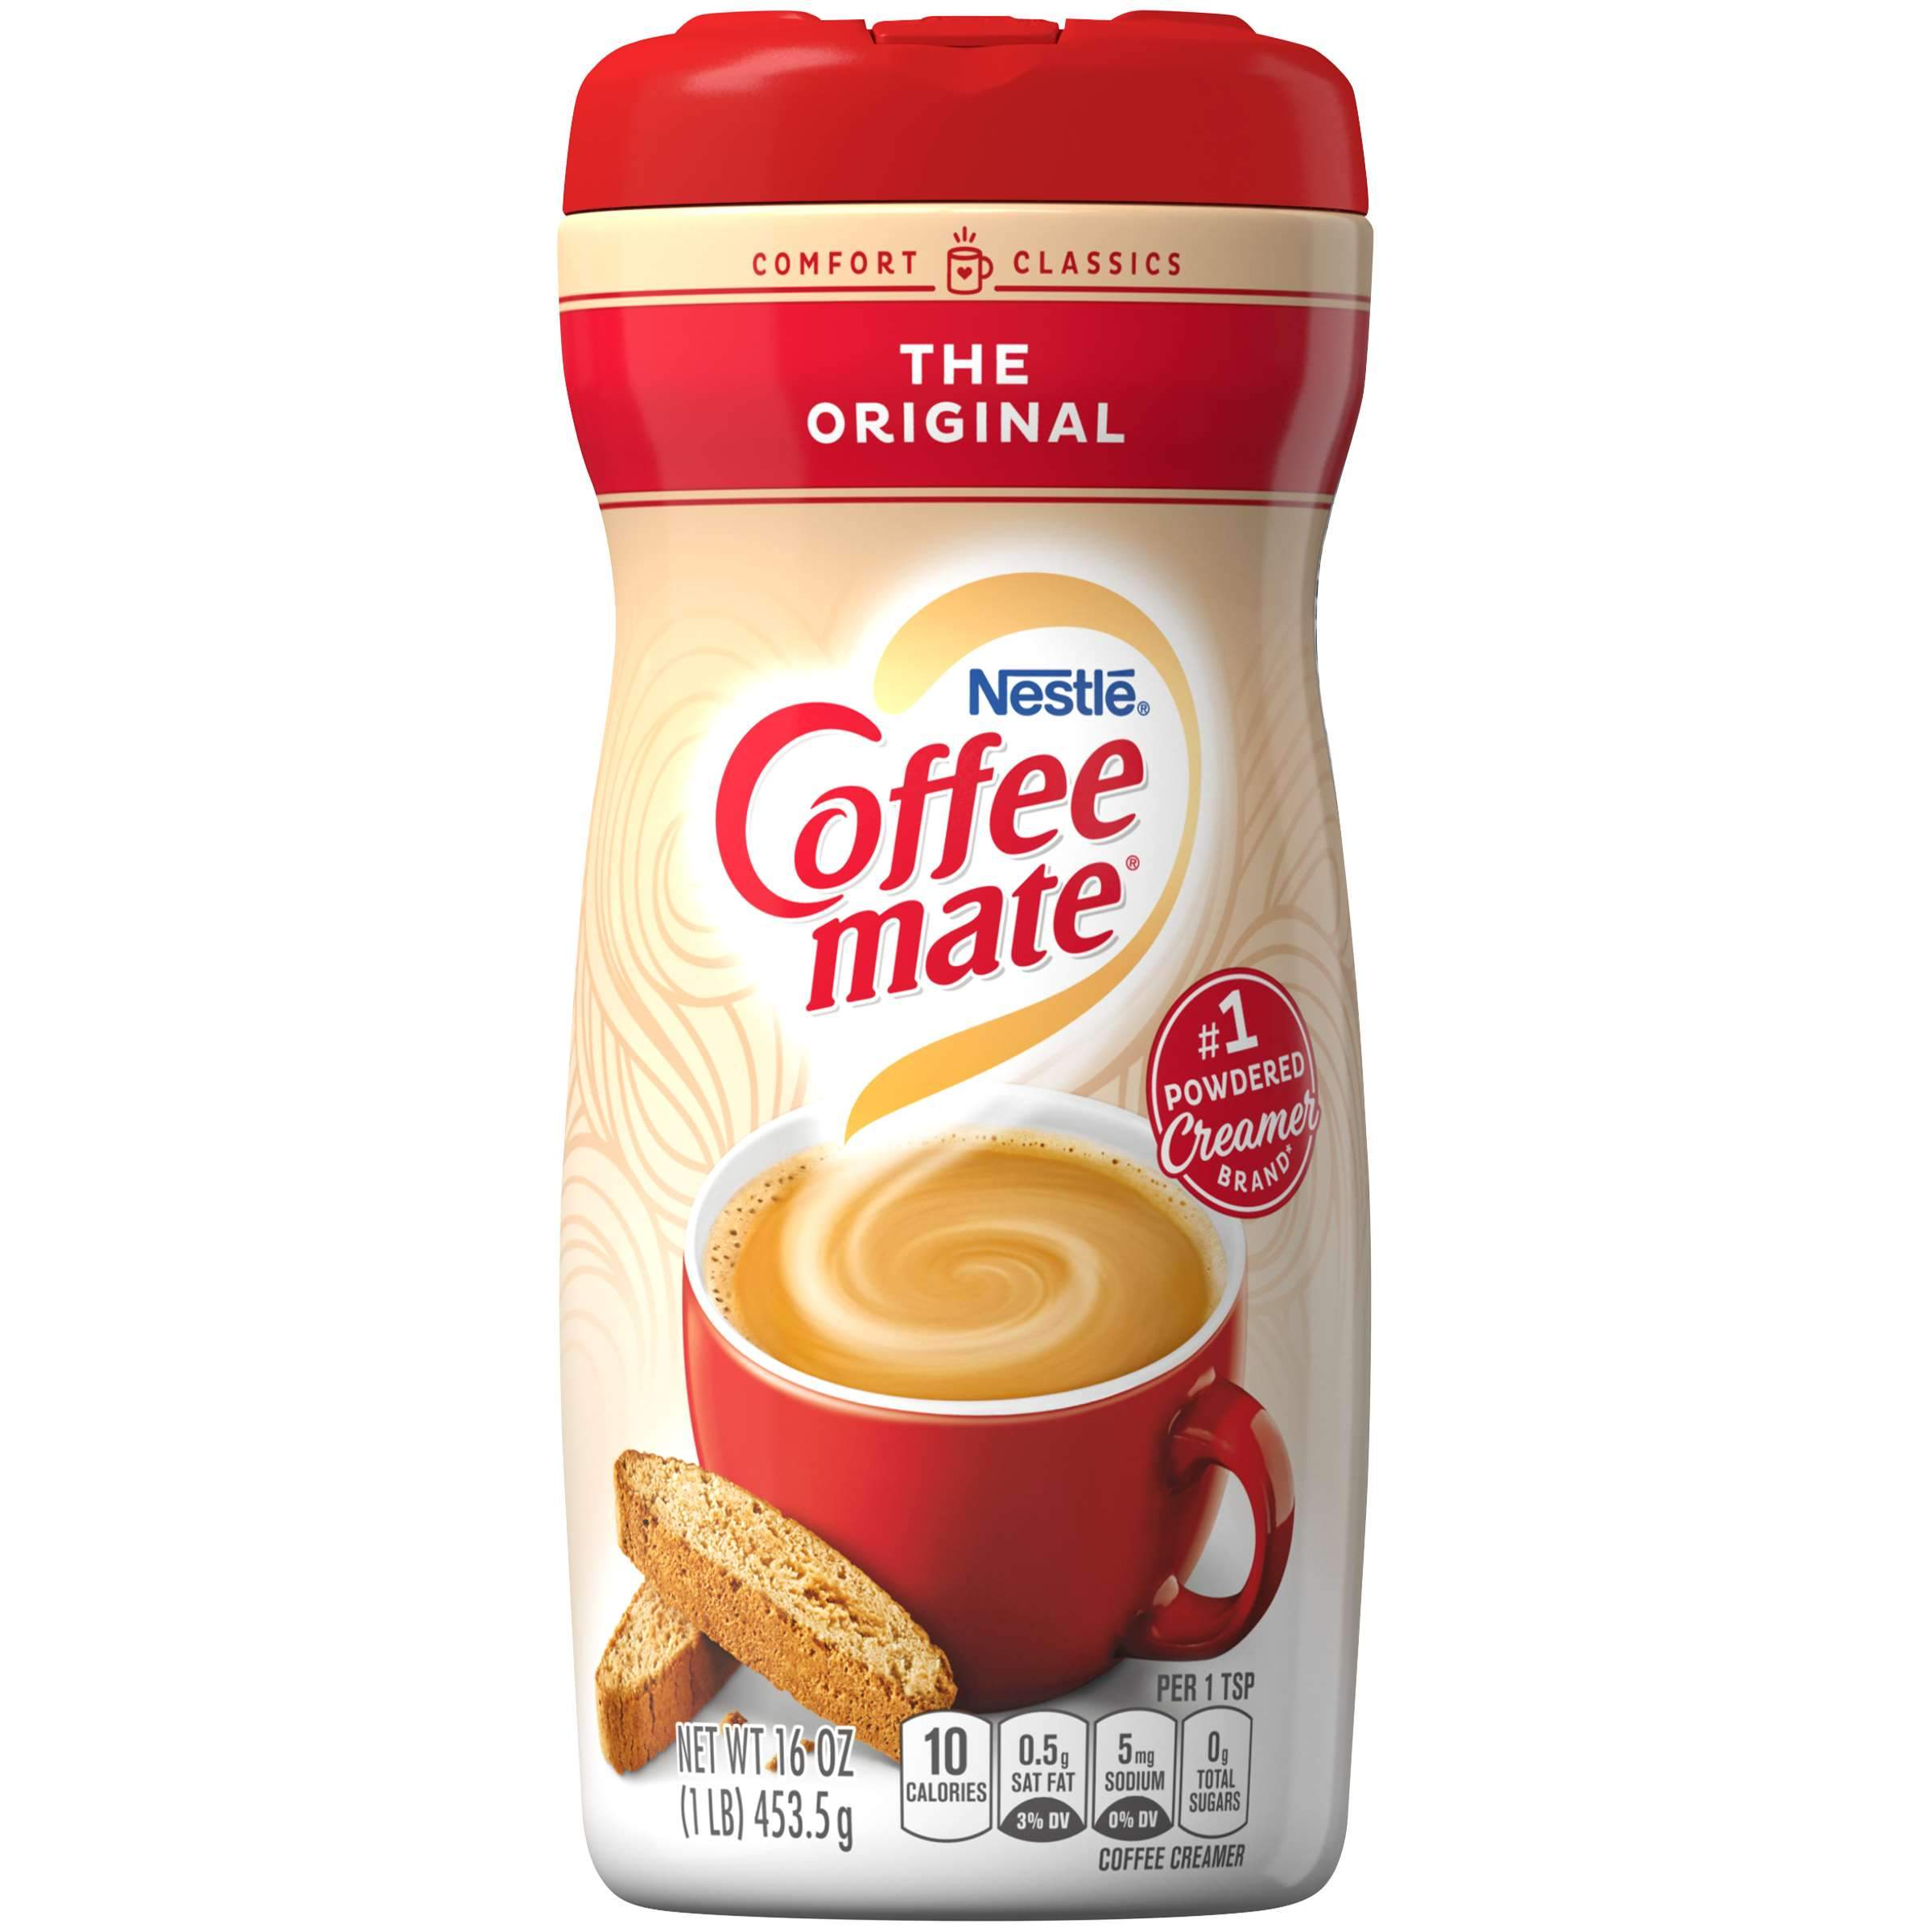 Coffee-mate Powder Creamer Nestle The Original 16 Ounce